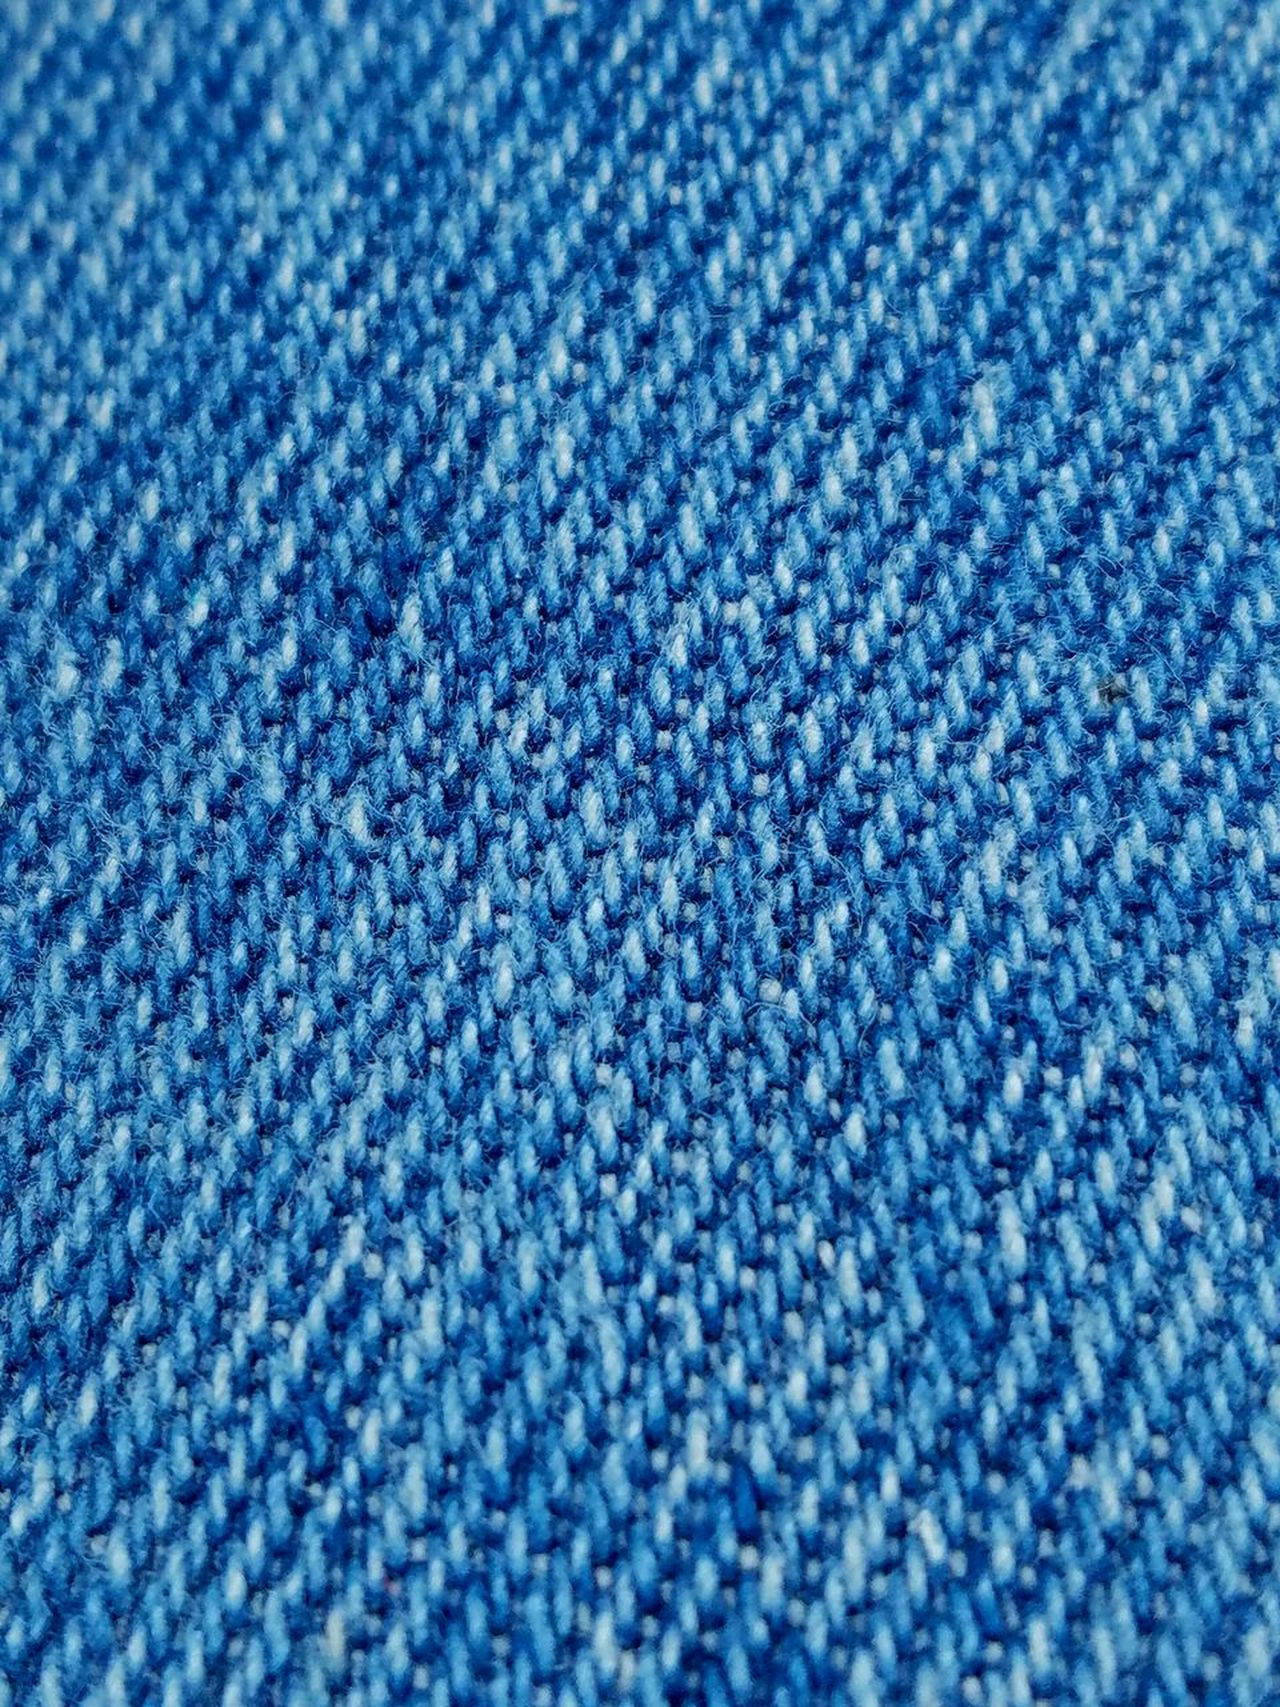 Texture Blue Backgrounds Full Frame Pattern Fabric No People Close-up Textured  Indoors  Textile Day